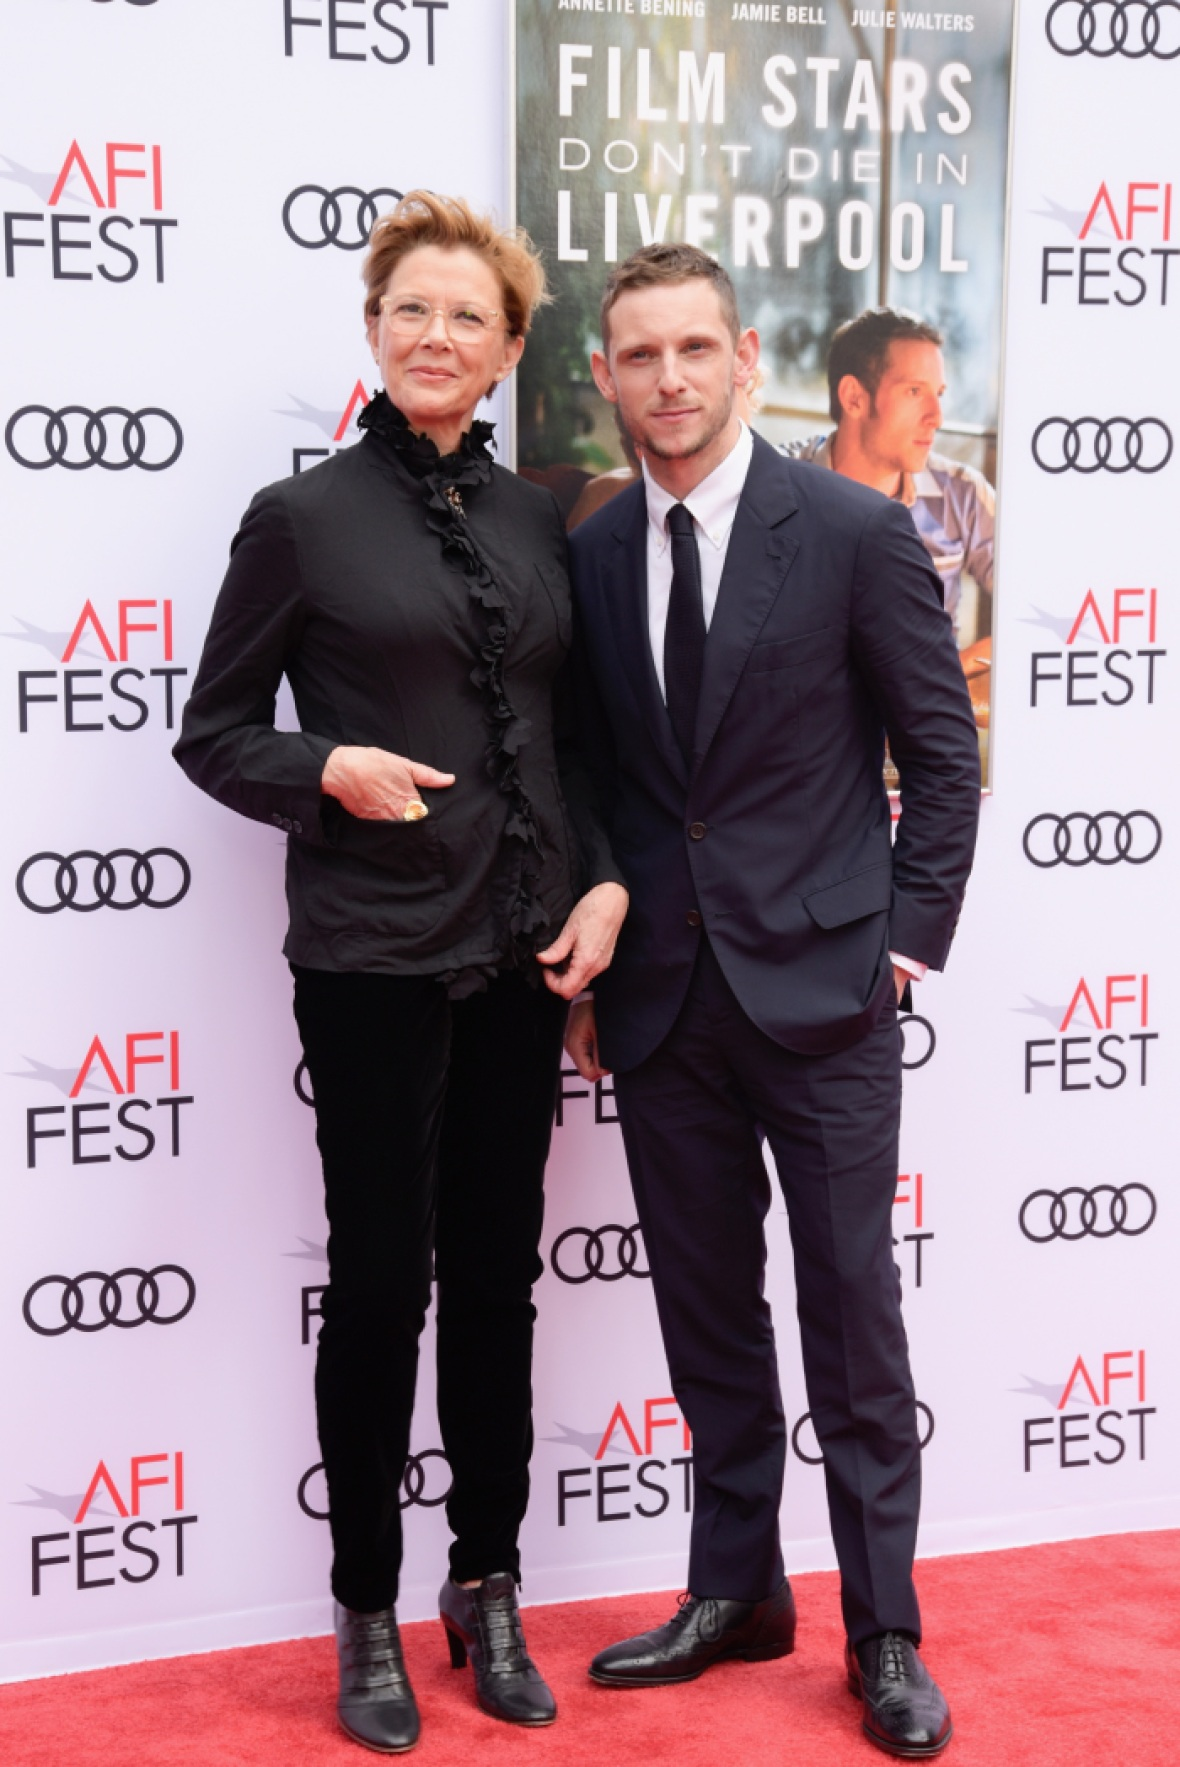 annette bening jamie bell getty images